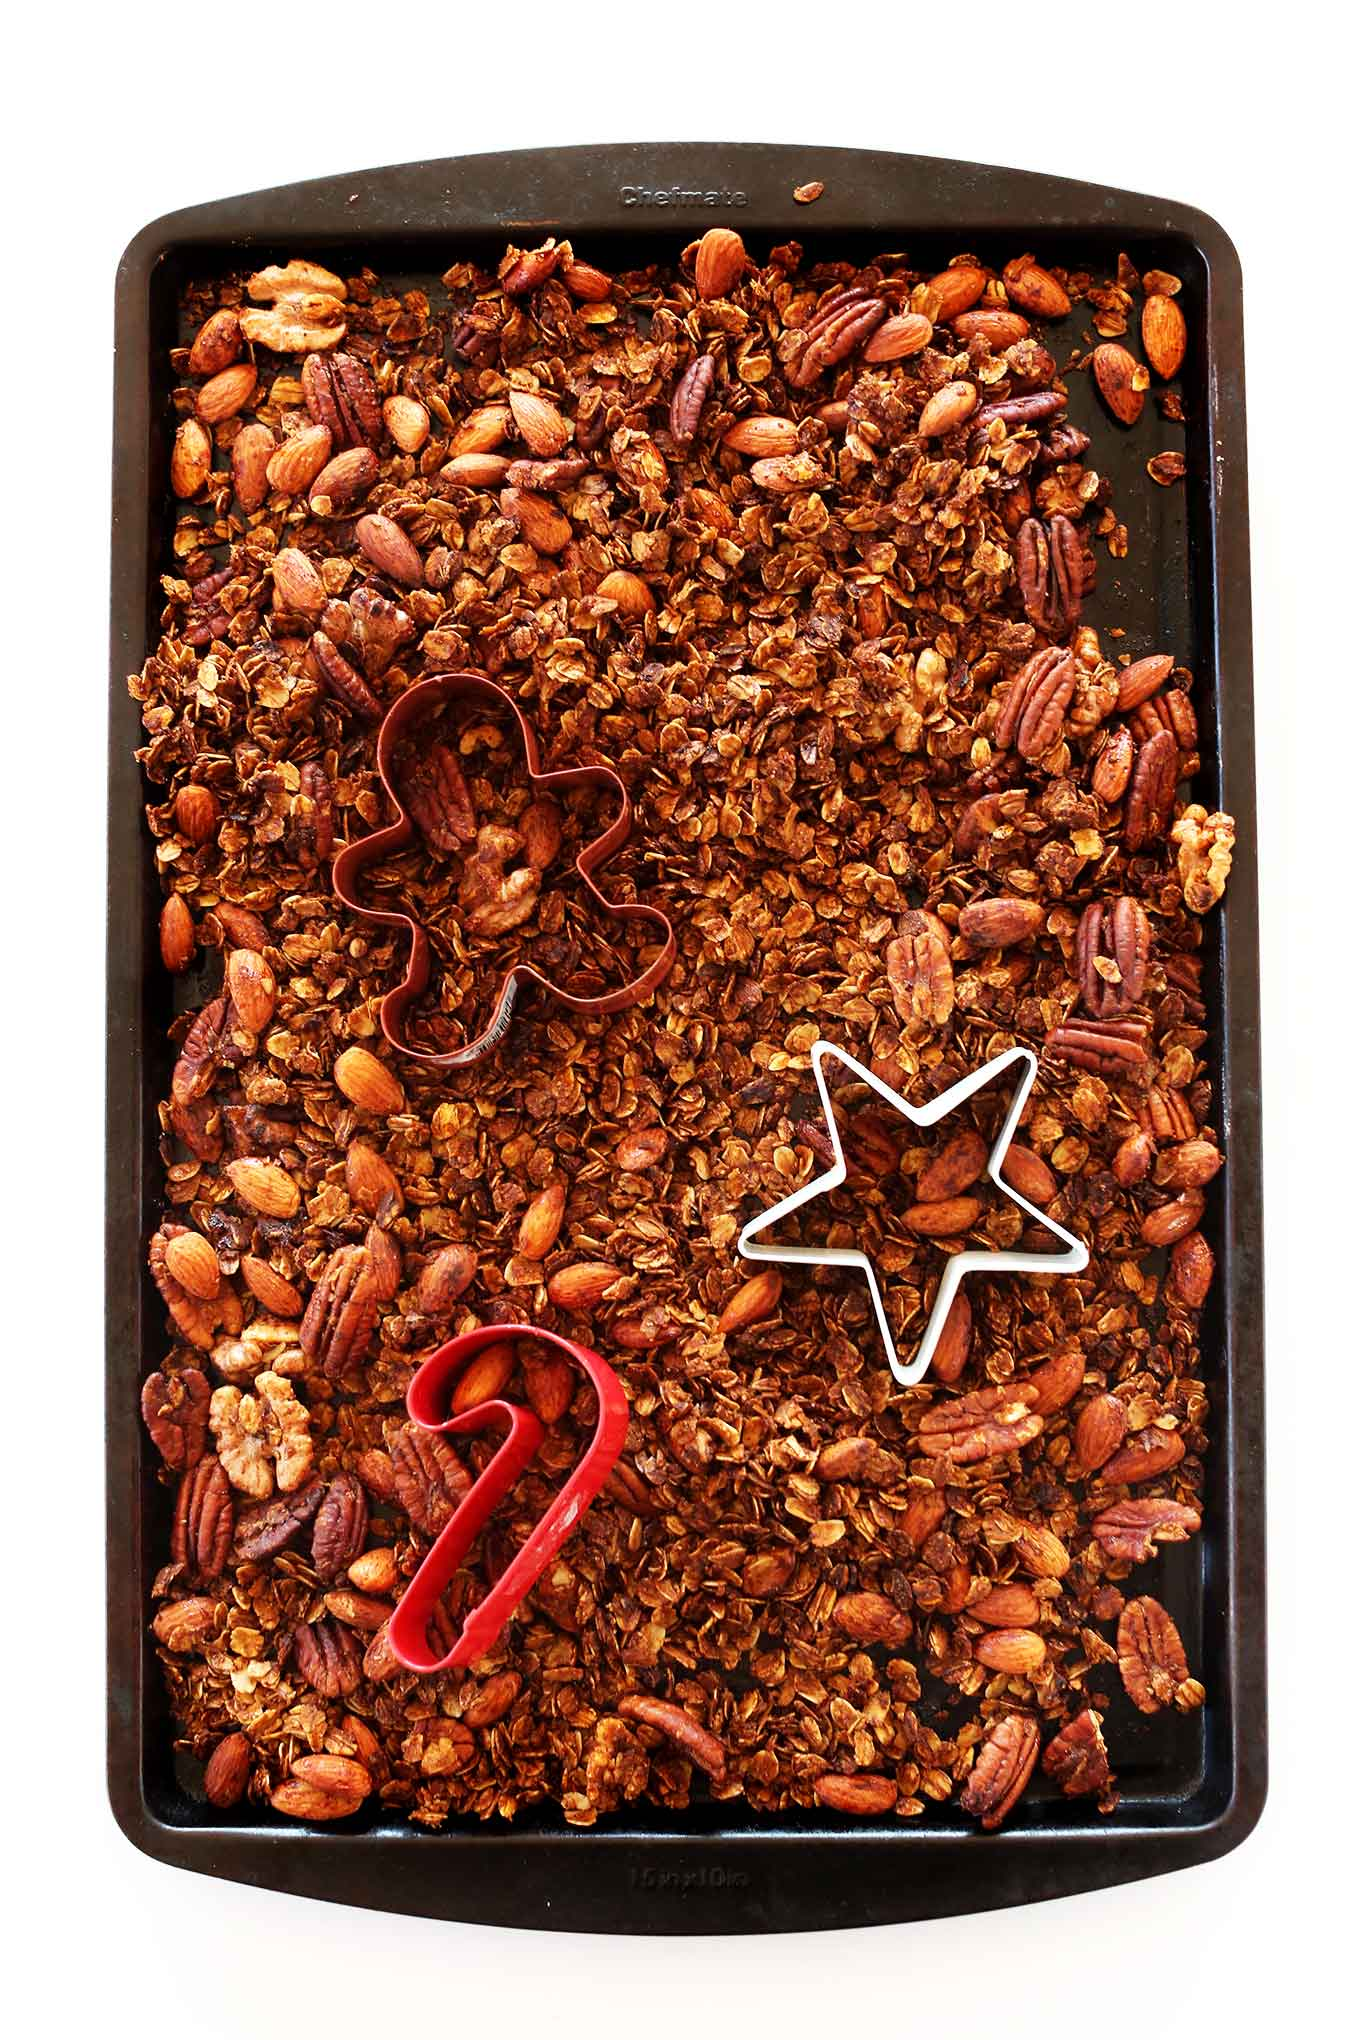 Gingerbread Granola for the perfect gluten-free vegan holiday gift